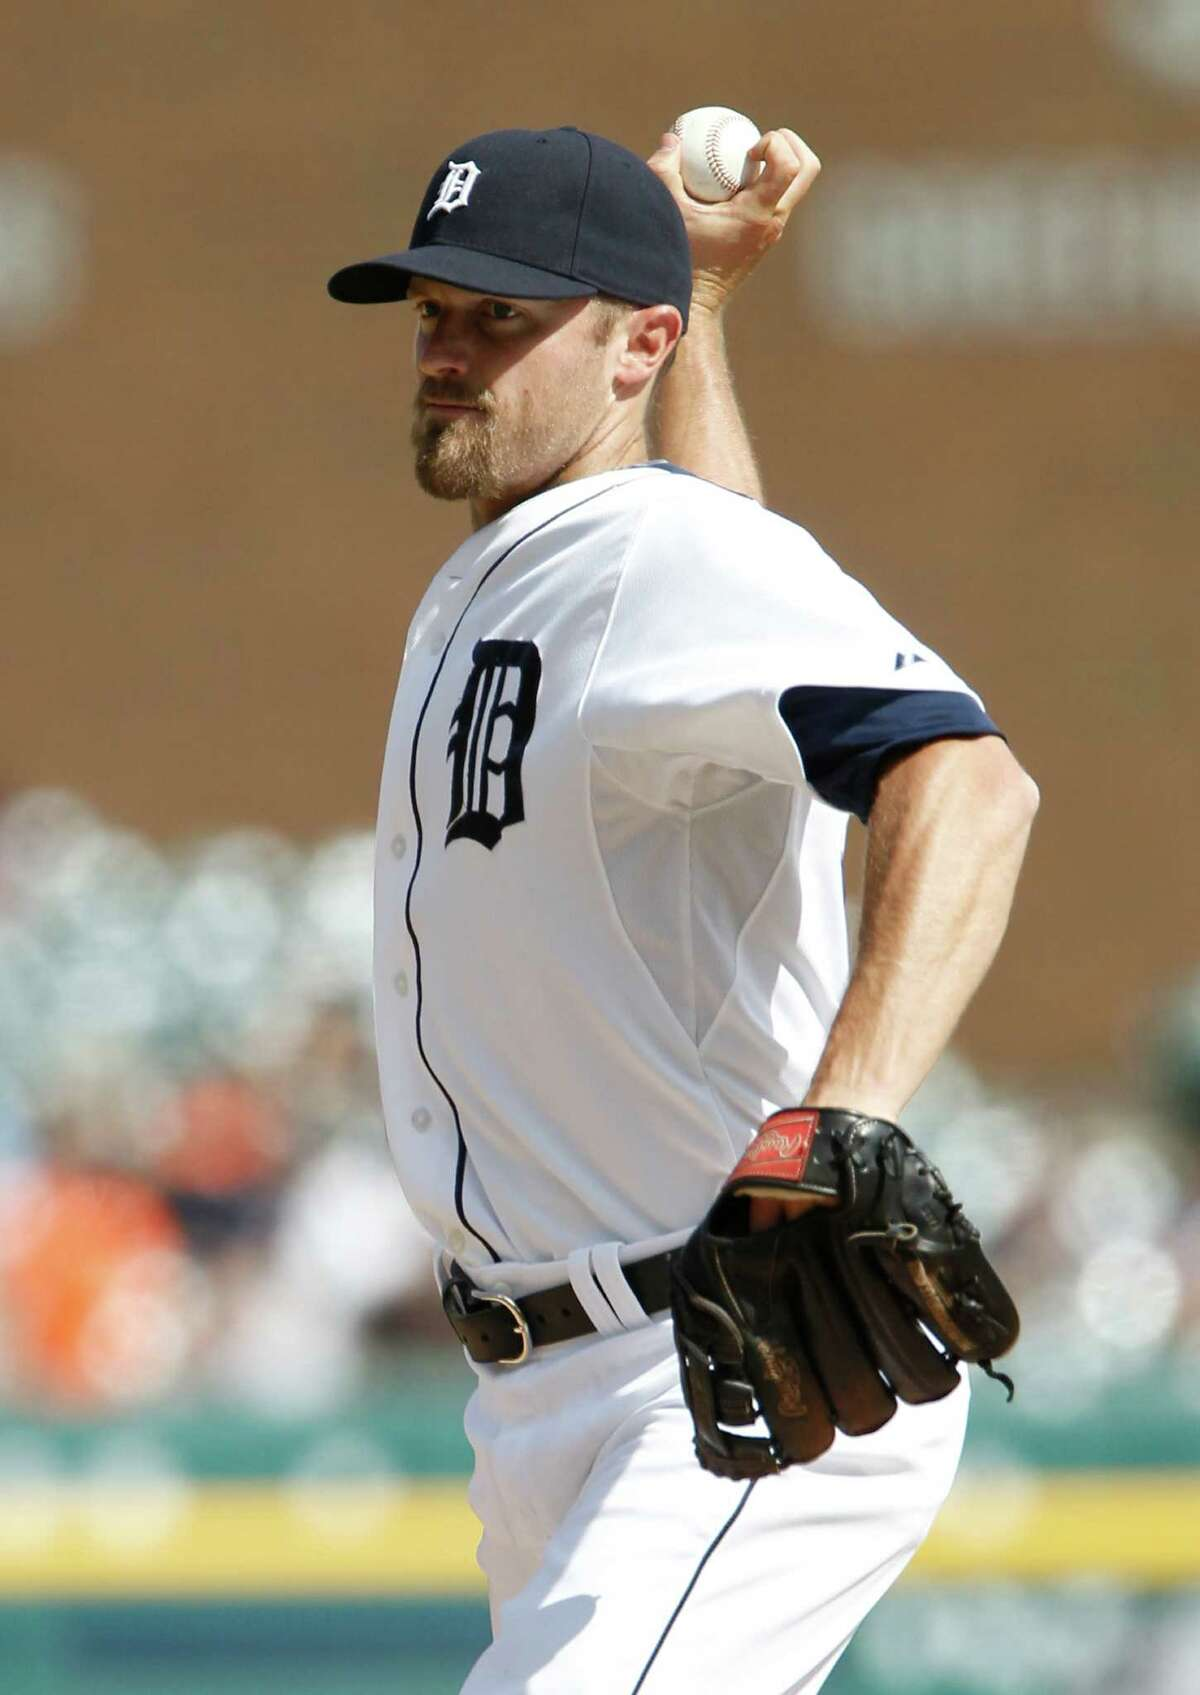 DETROIT, MI - MAY 22: Infielder Danny Worth #29 of the Detroit Tigers pitches against the Texas Rangers at Comerica Park on May 22, 2014 in Detroit, Michigan.